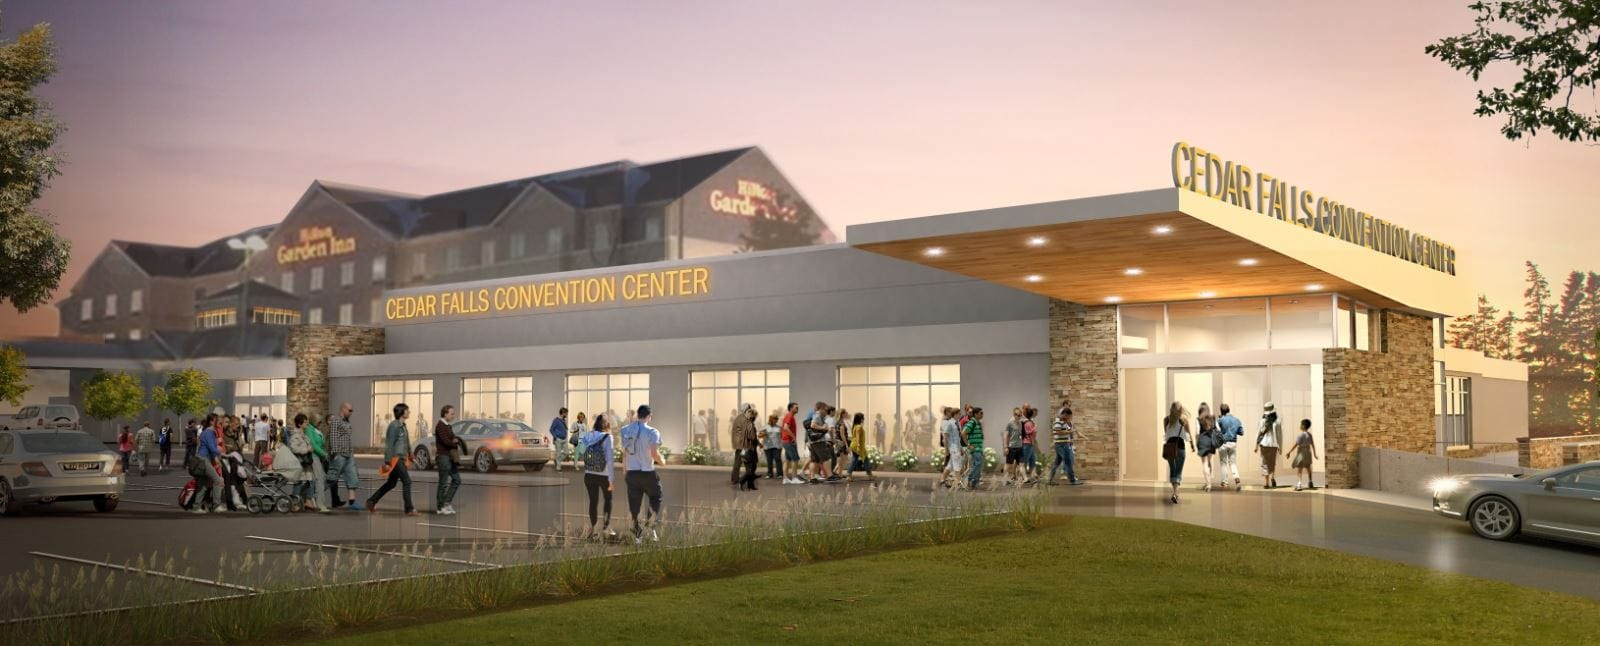 The Hilton Garden Inn is expanding their meeting space. The Cedar Falls Convention and Event Center will open in June of 2019